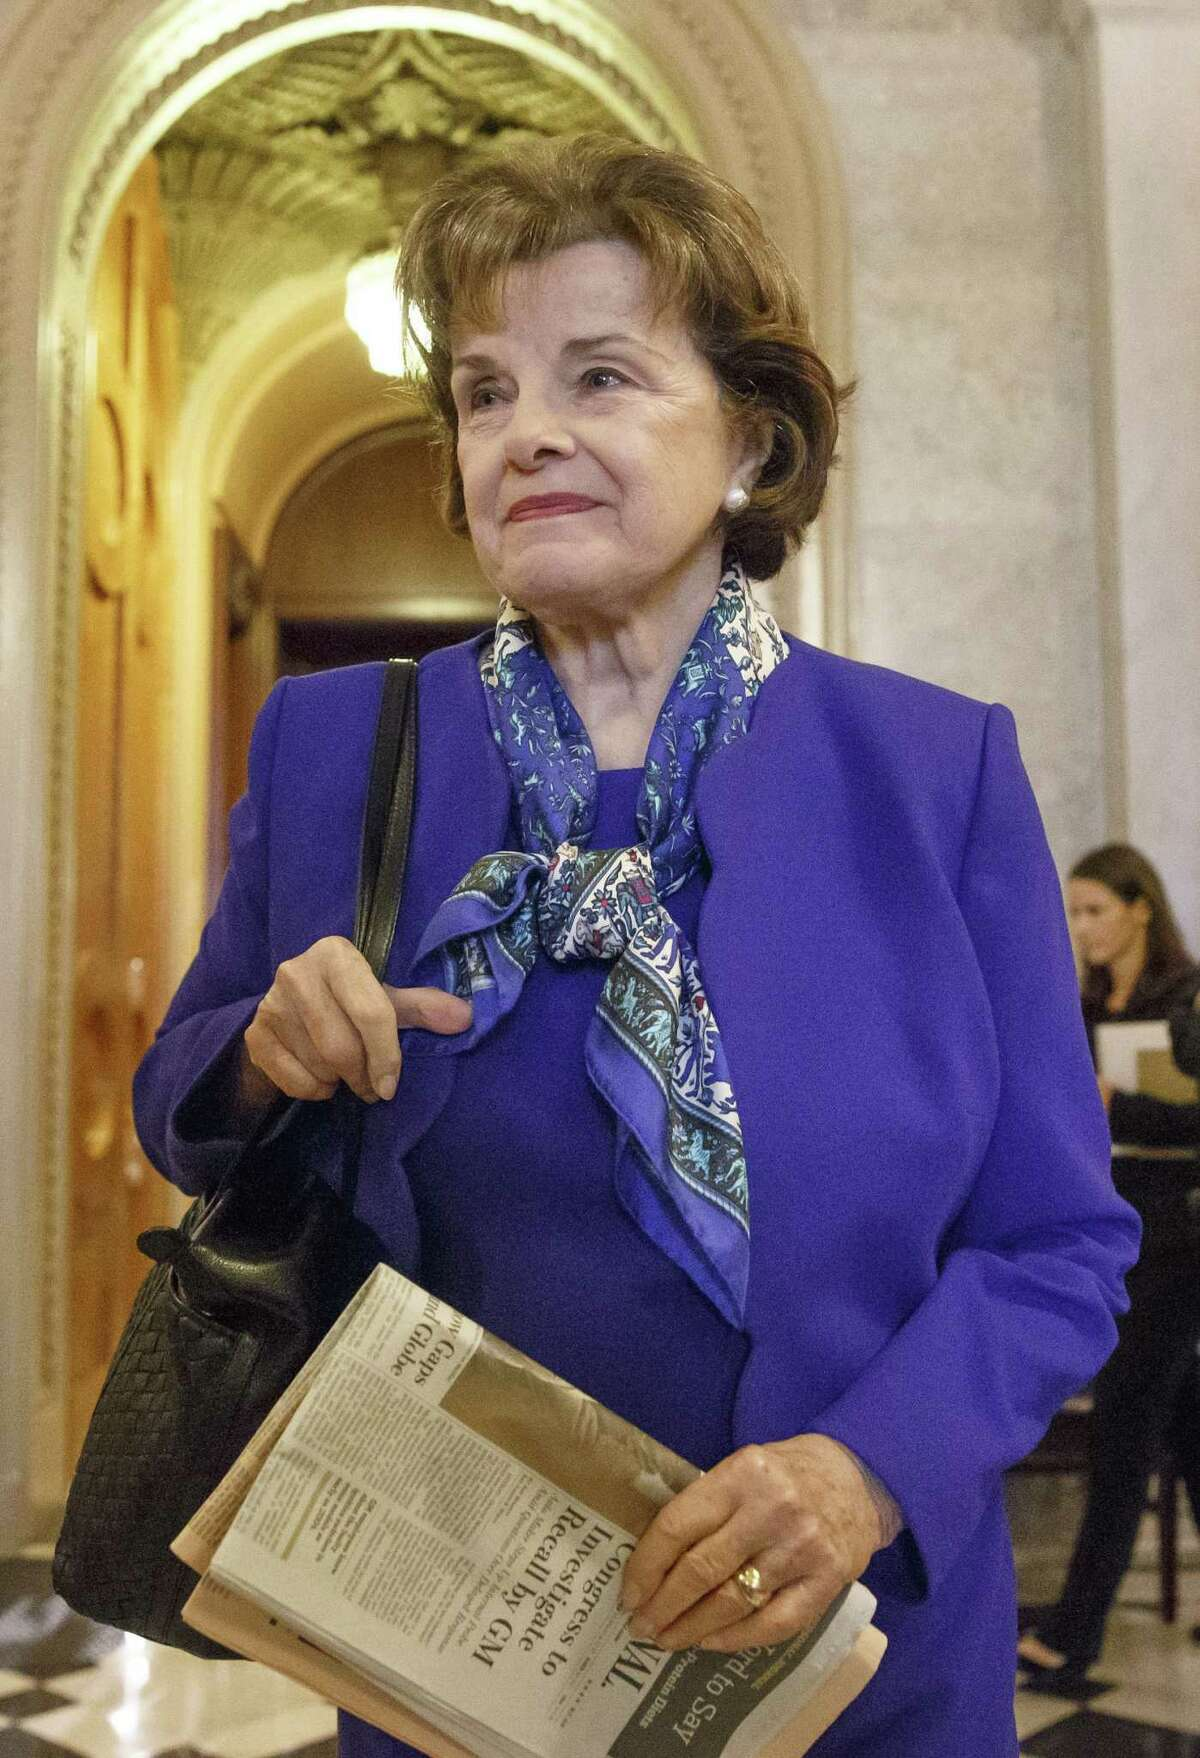 Sen. Dianne Feinstein is angry about the CIA's supposed destruction of evidence.